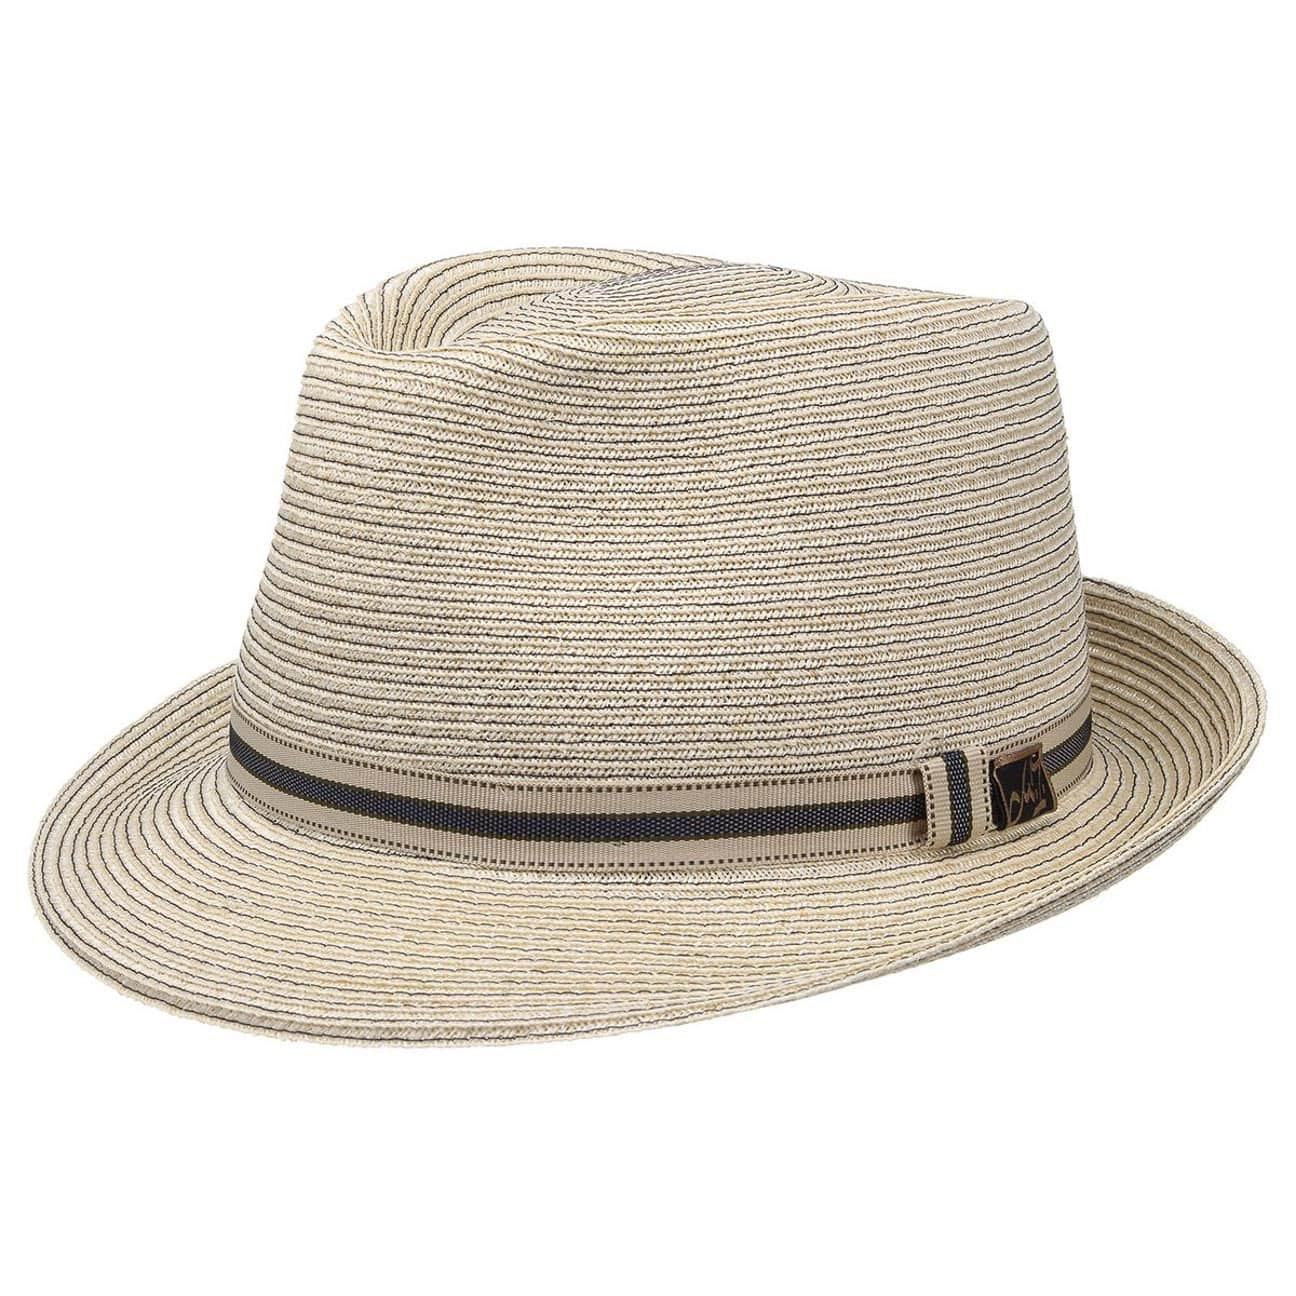 ... Zico Straw Trilby Hat by Mayser - nature 6 ... ff43942b697c